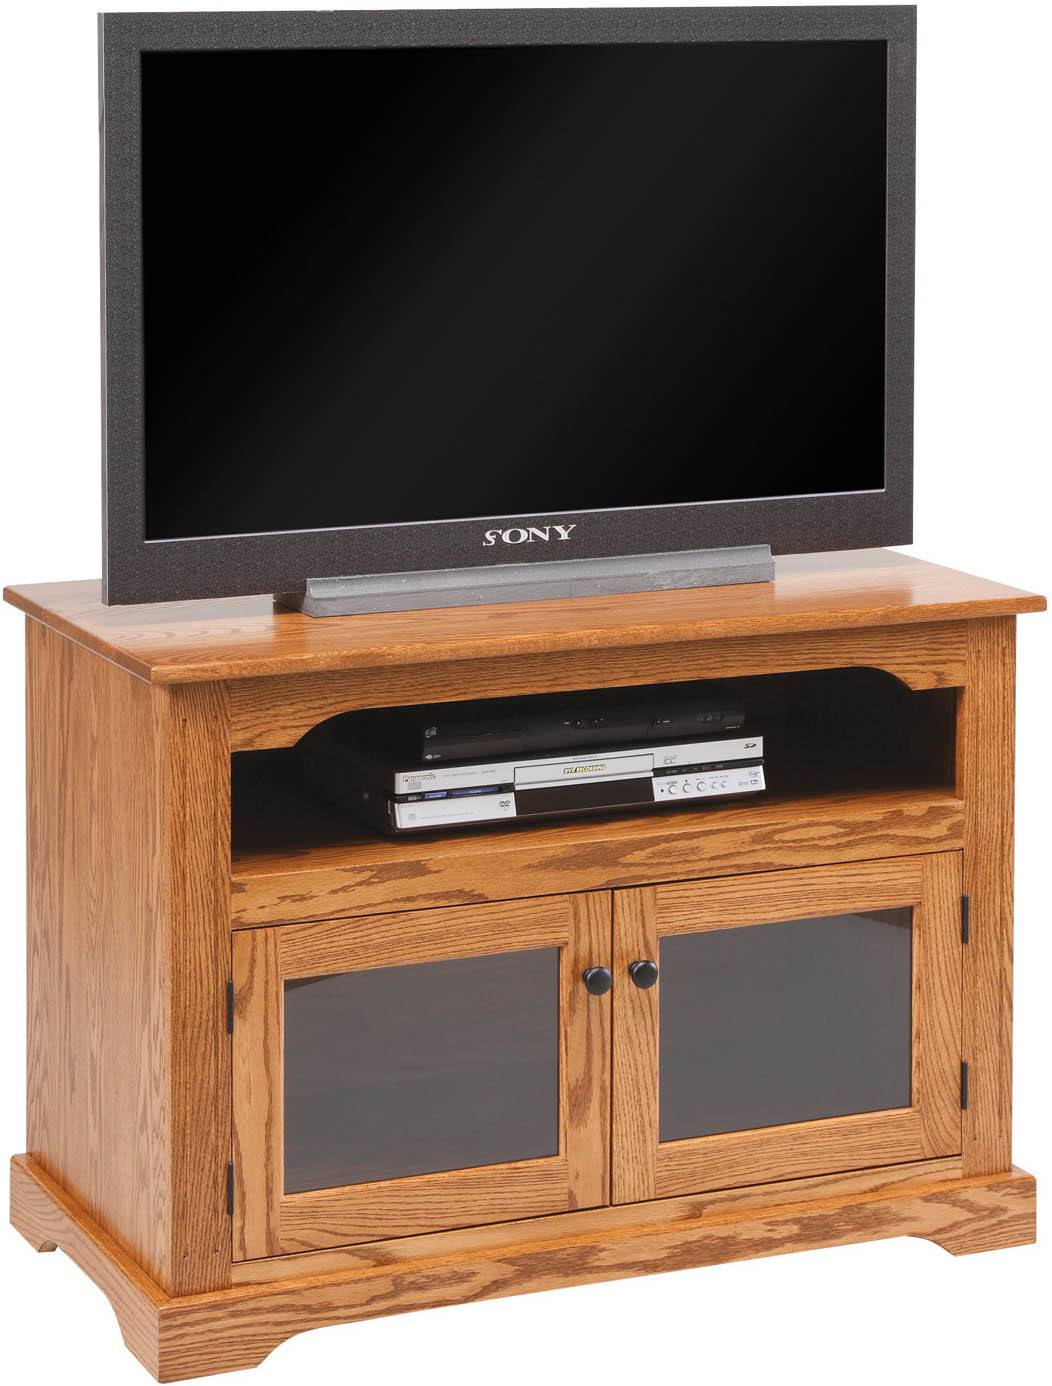 Entertainment centers amish furniture by brandenberry for Mission style entertainment center plans